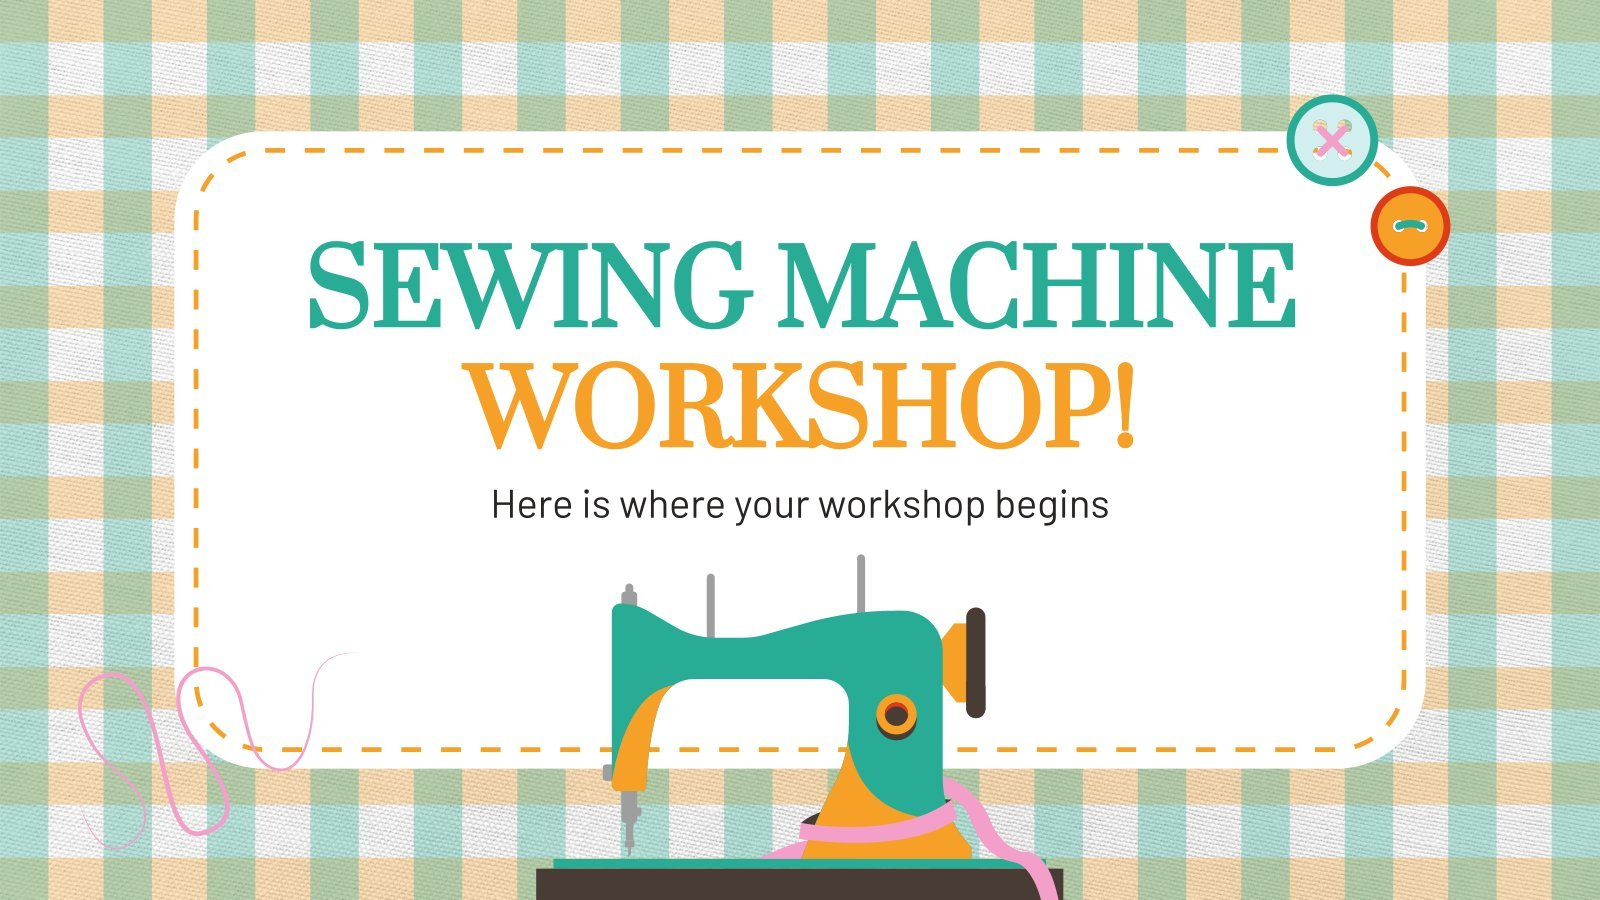 Sewing Machine Workshop presentation template